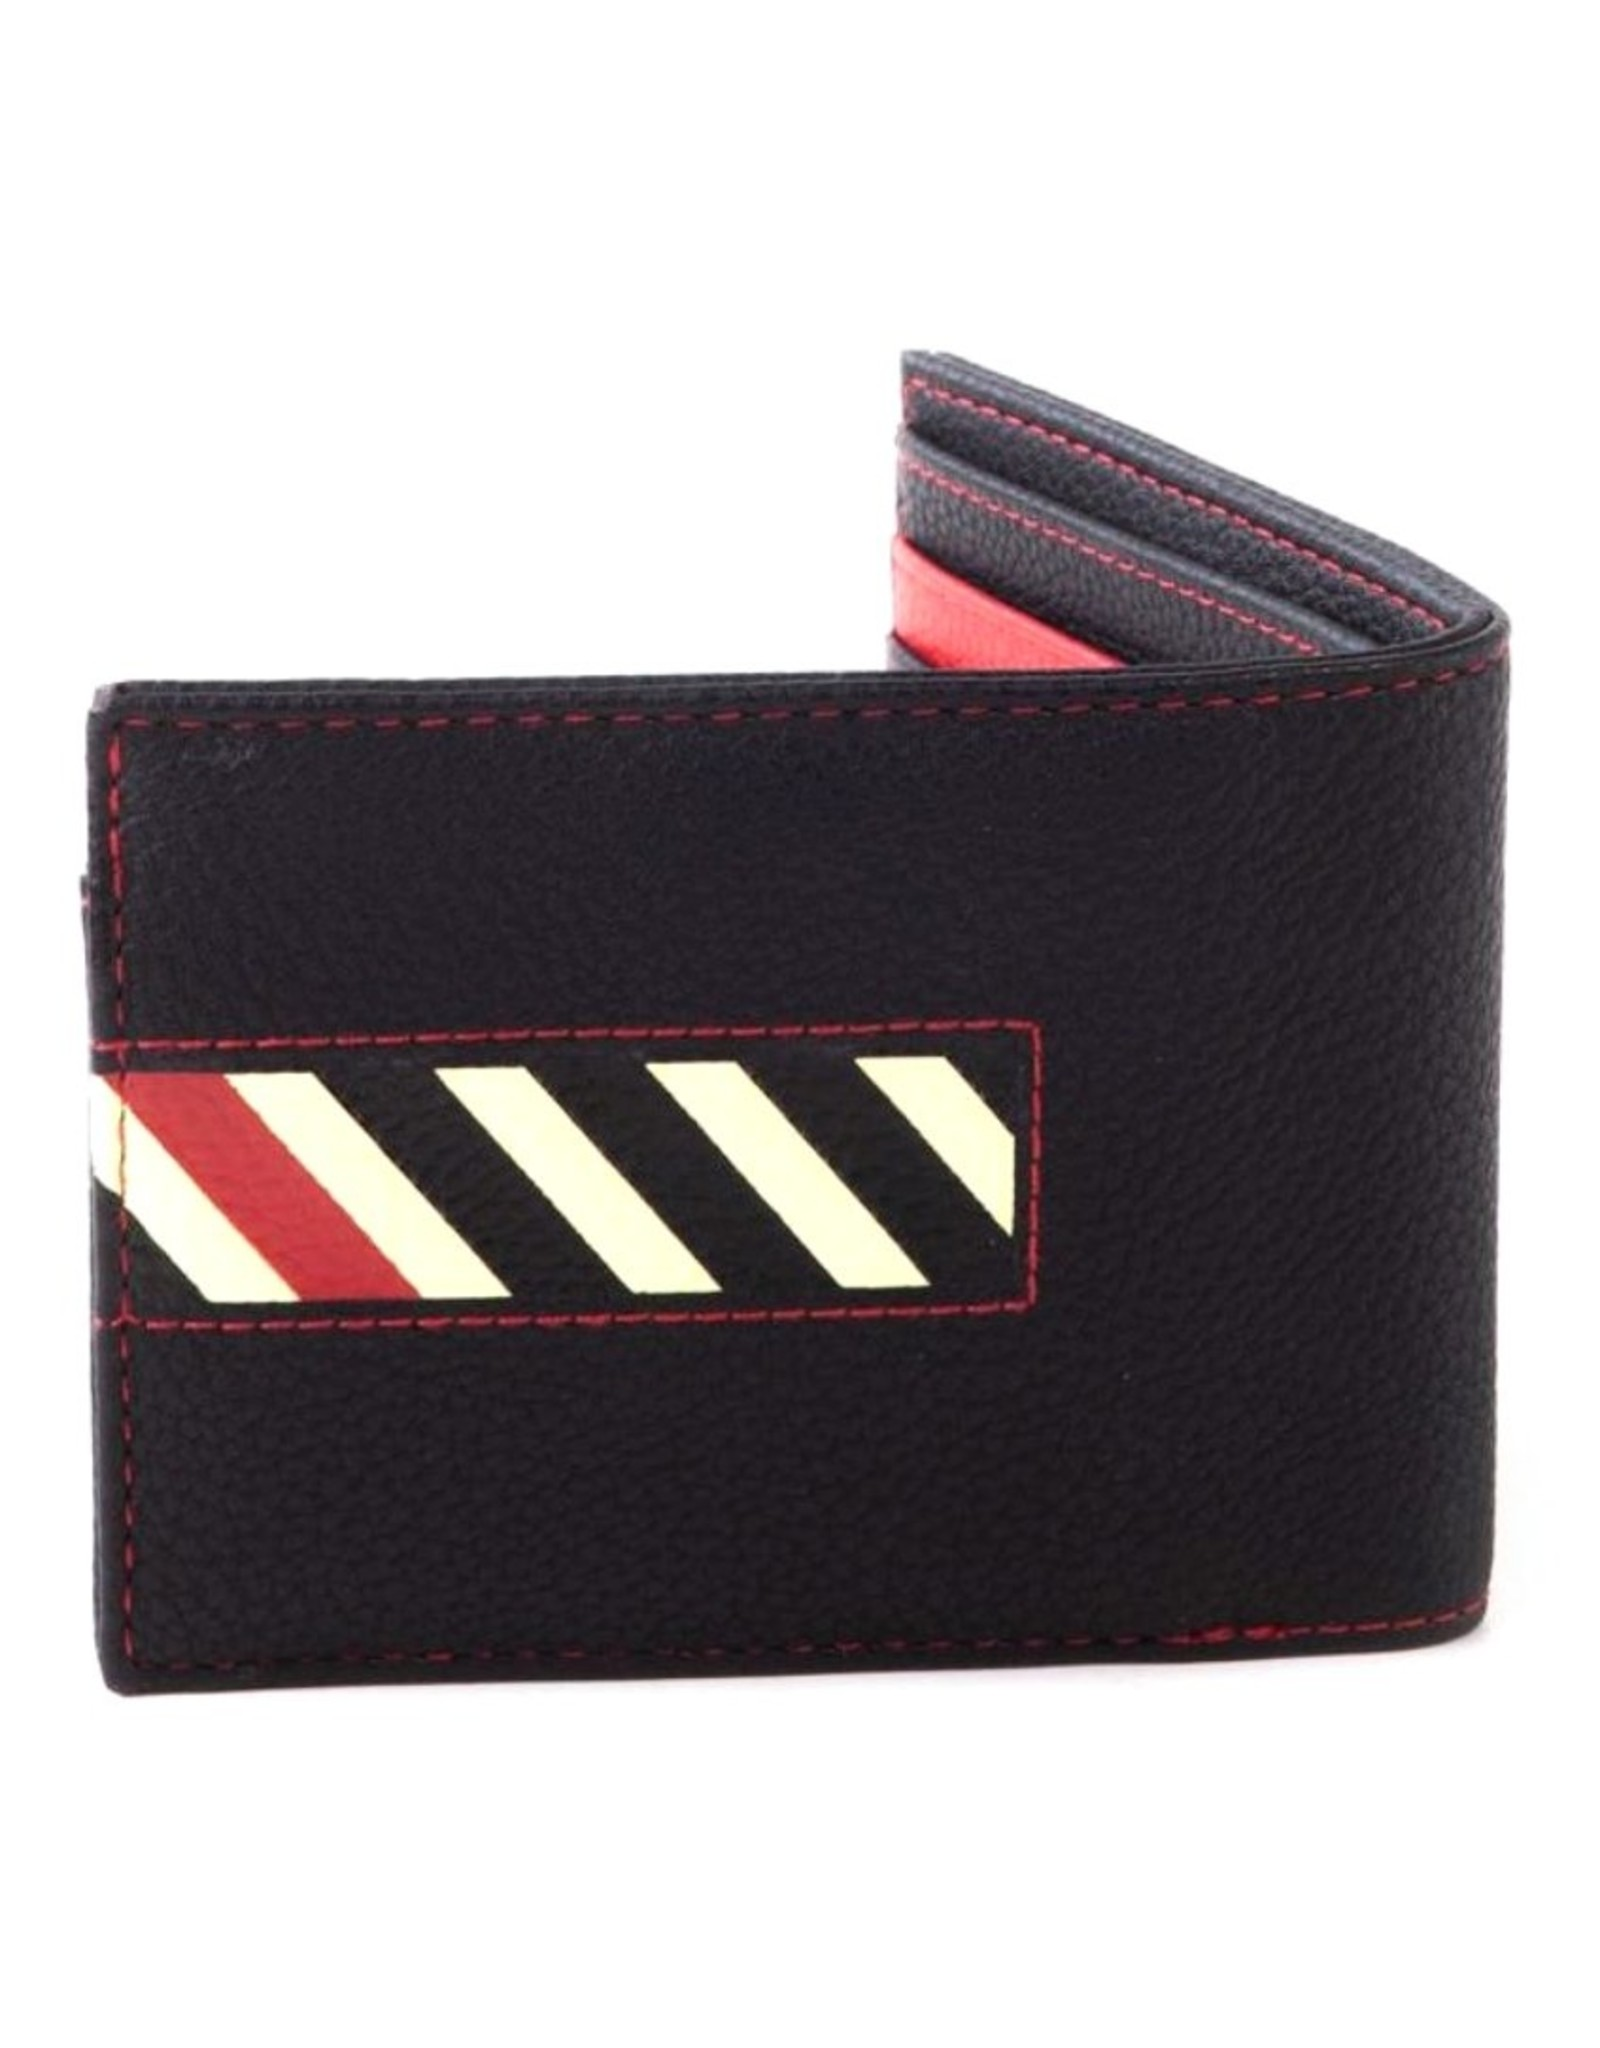 Difuzed Merchandise wallets - Marvel  Deadpool Tacos wallet